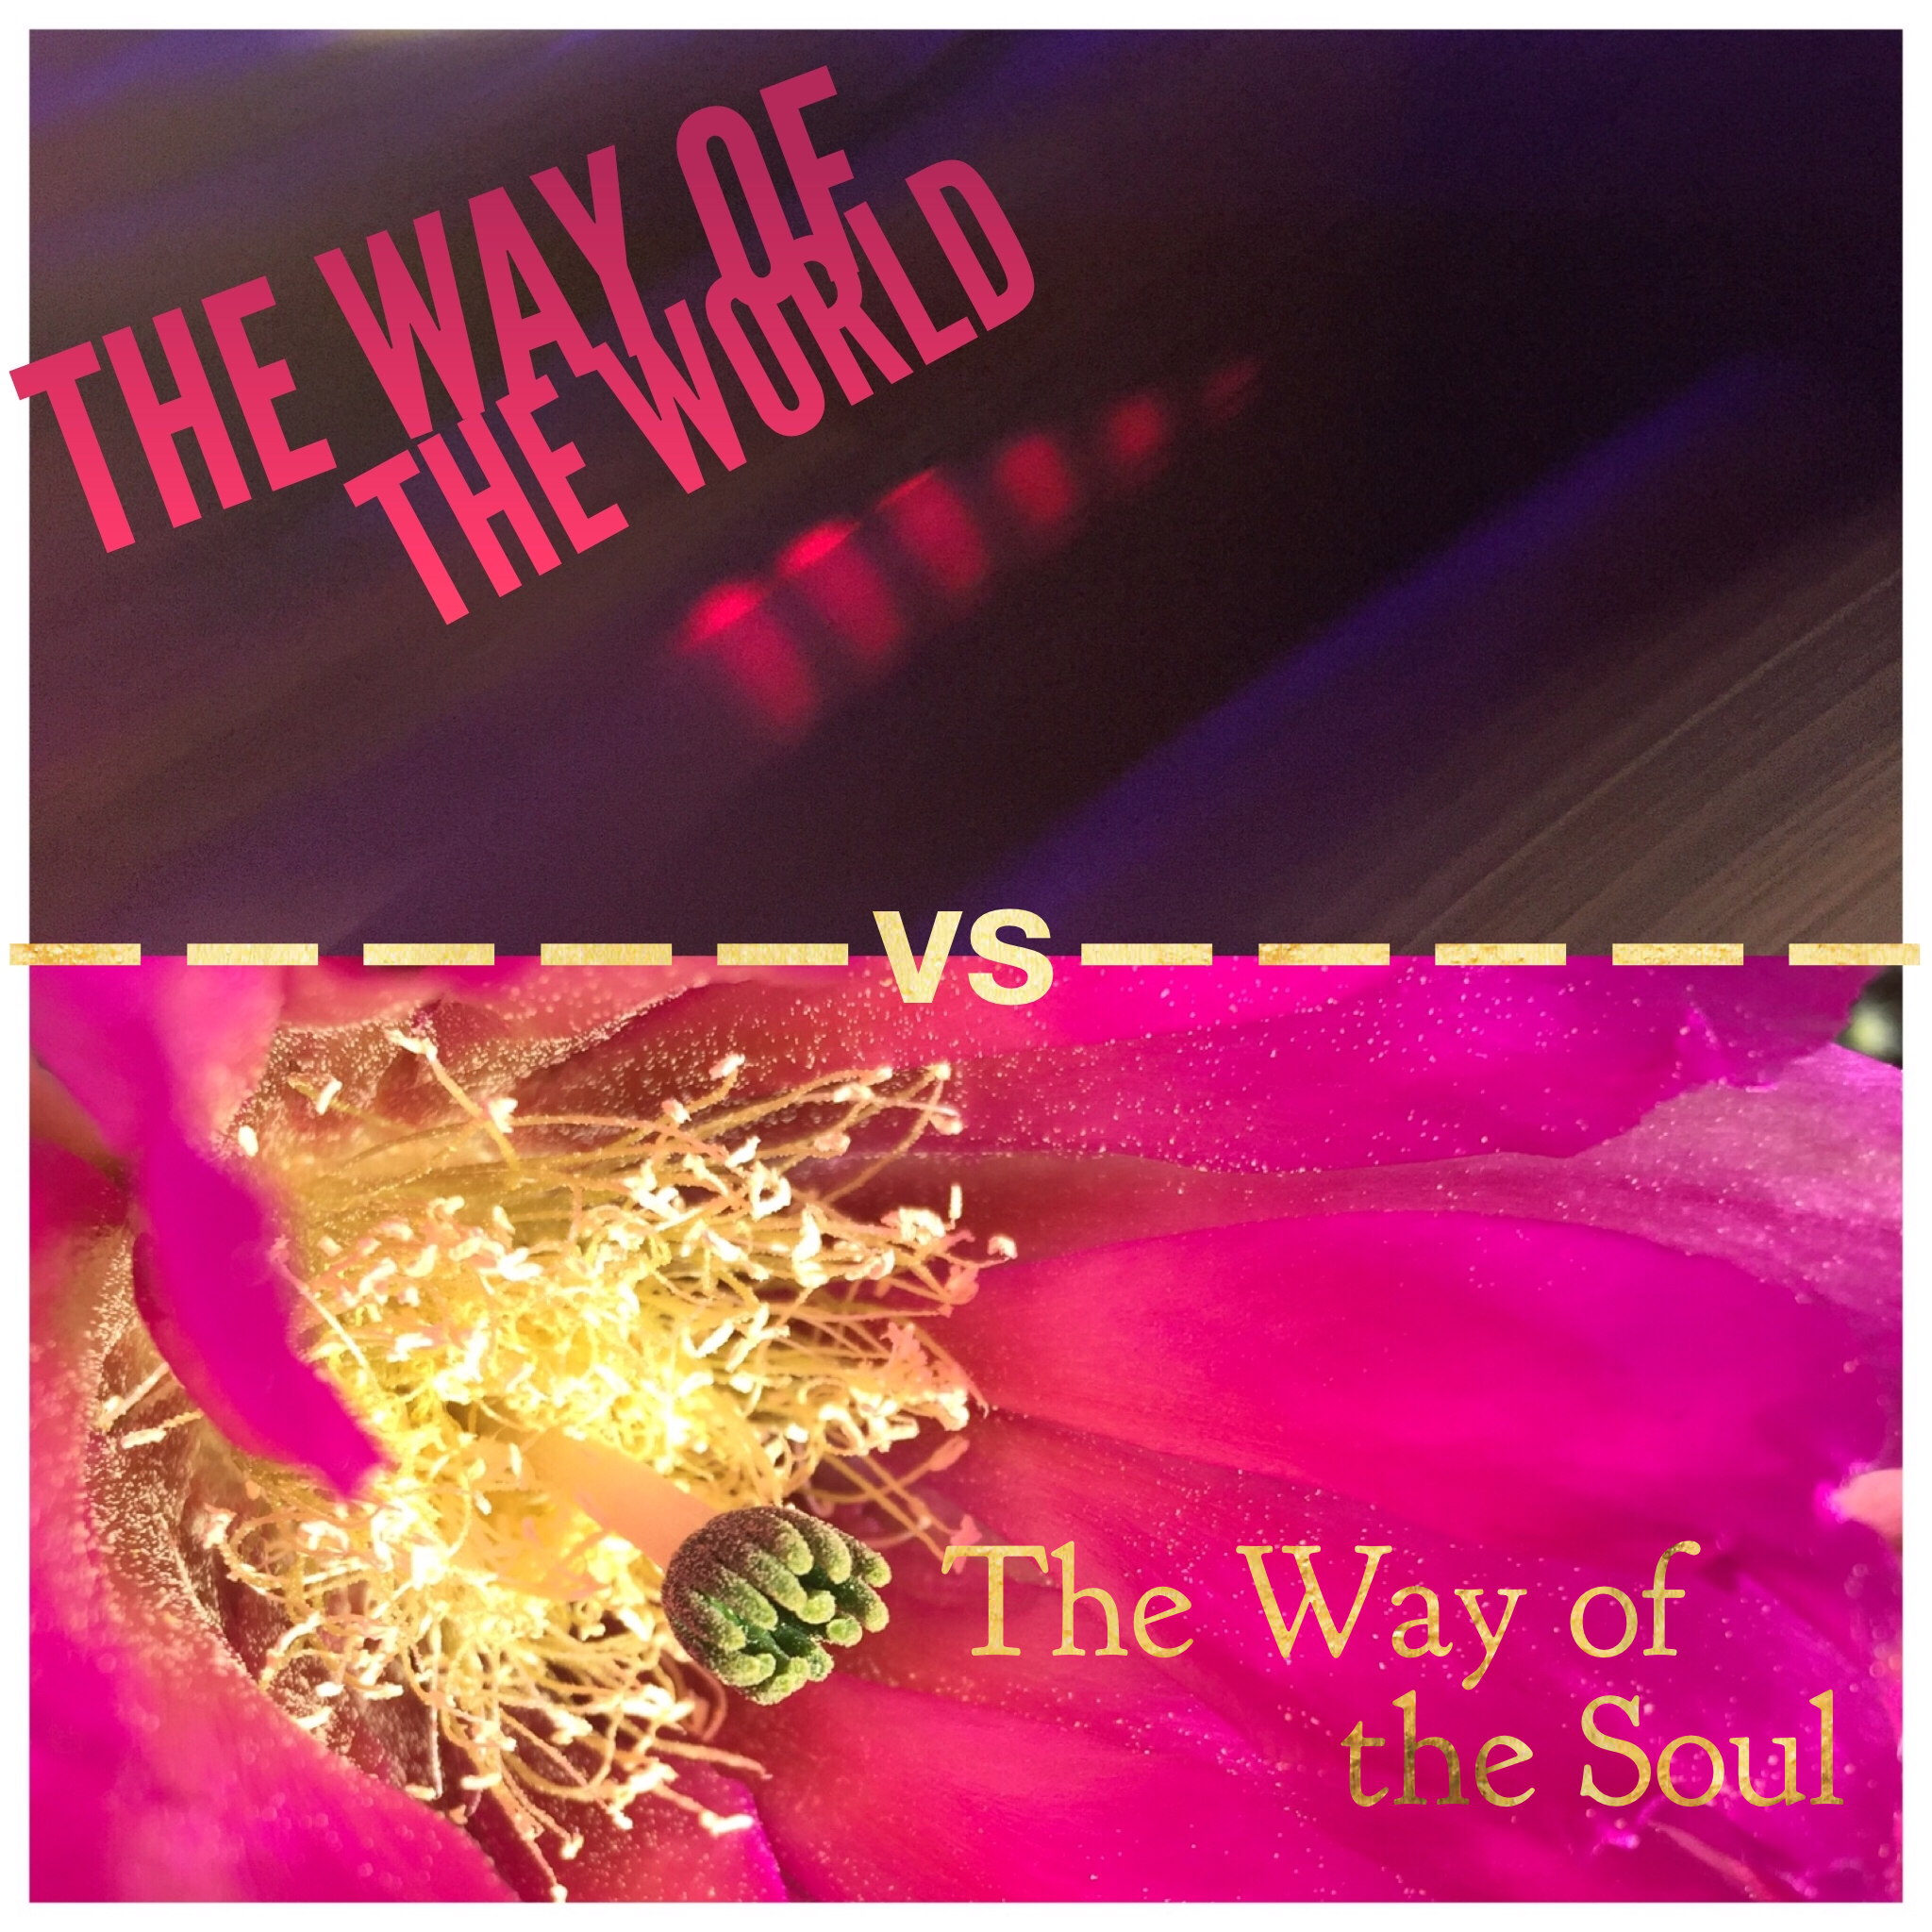 The Way of the World -vs- the Way of the Soul